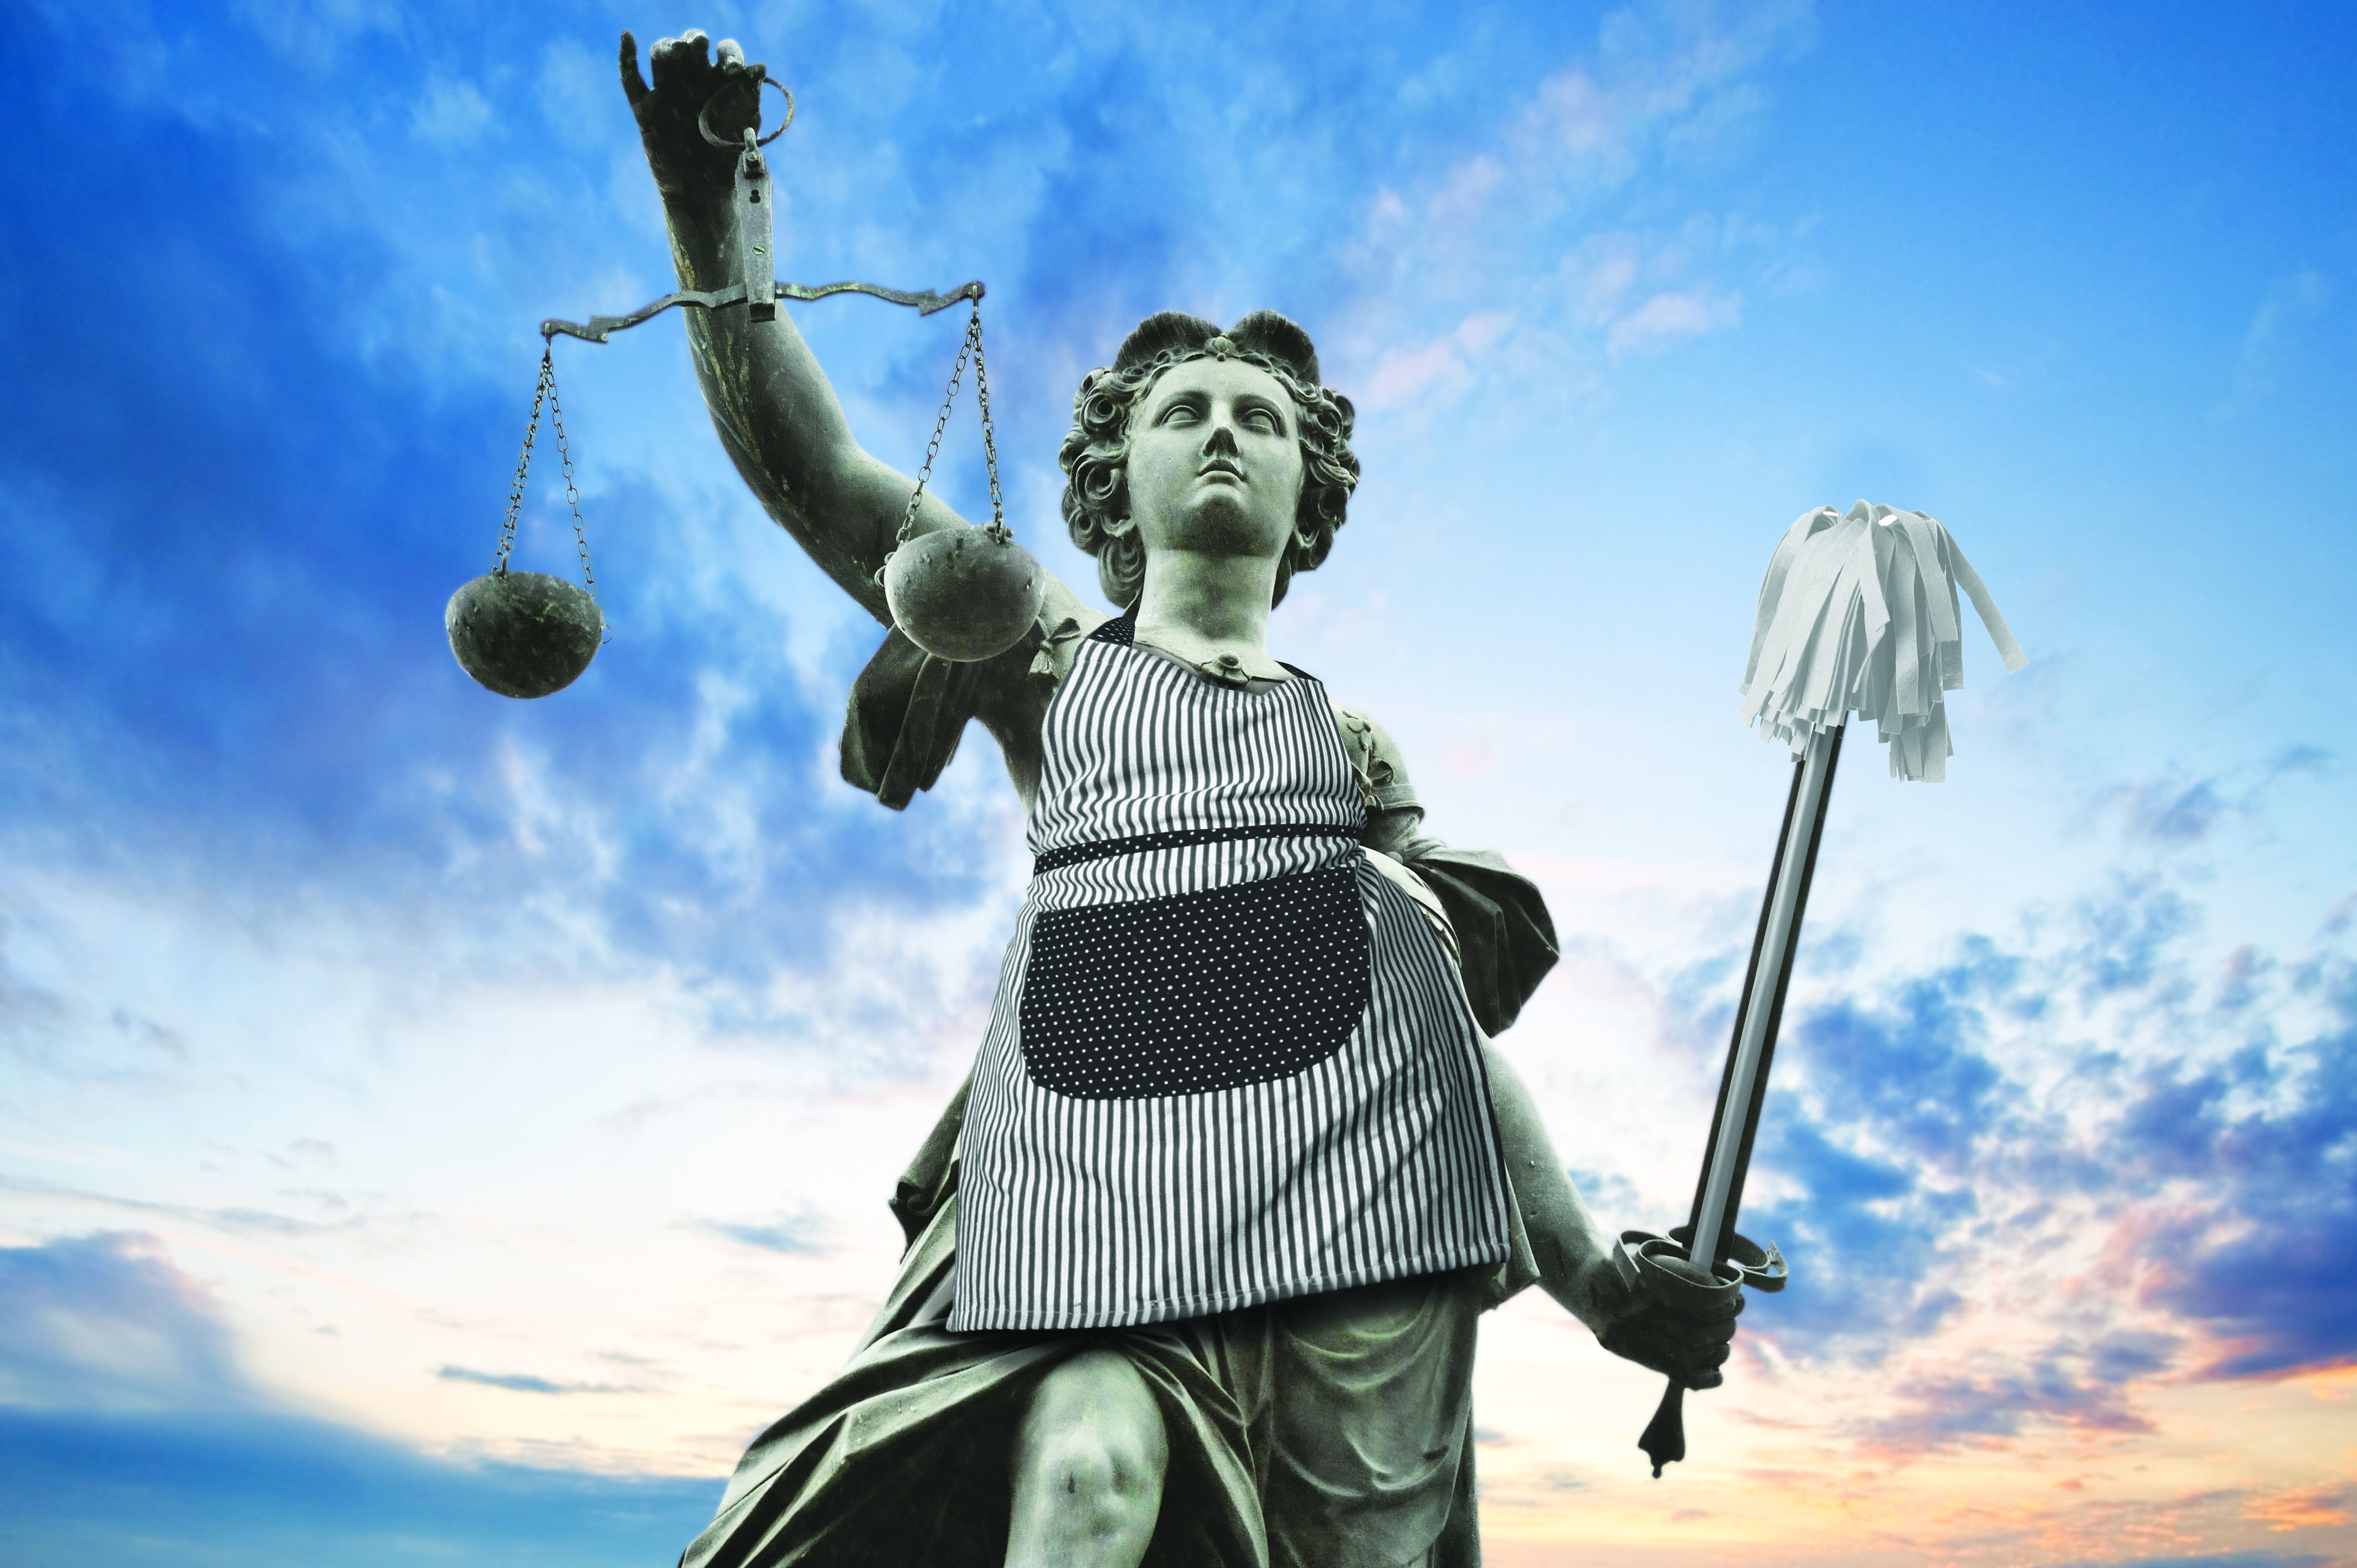 Domestic workers set for legal rights in Oman